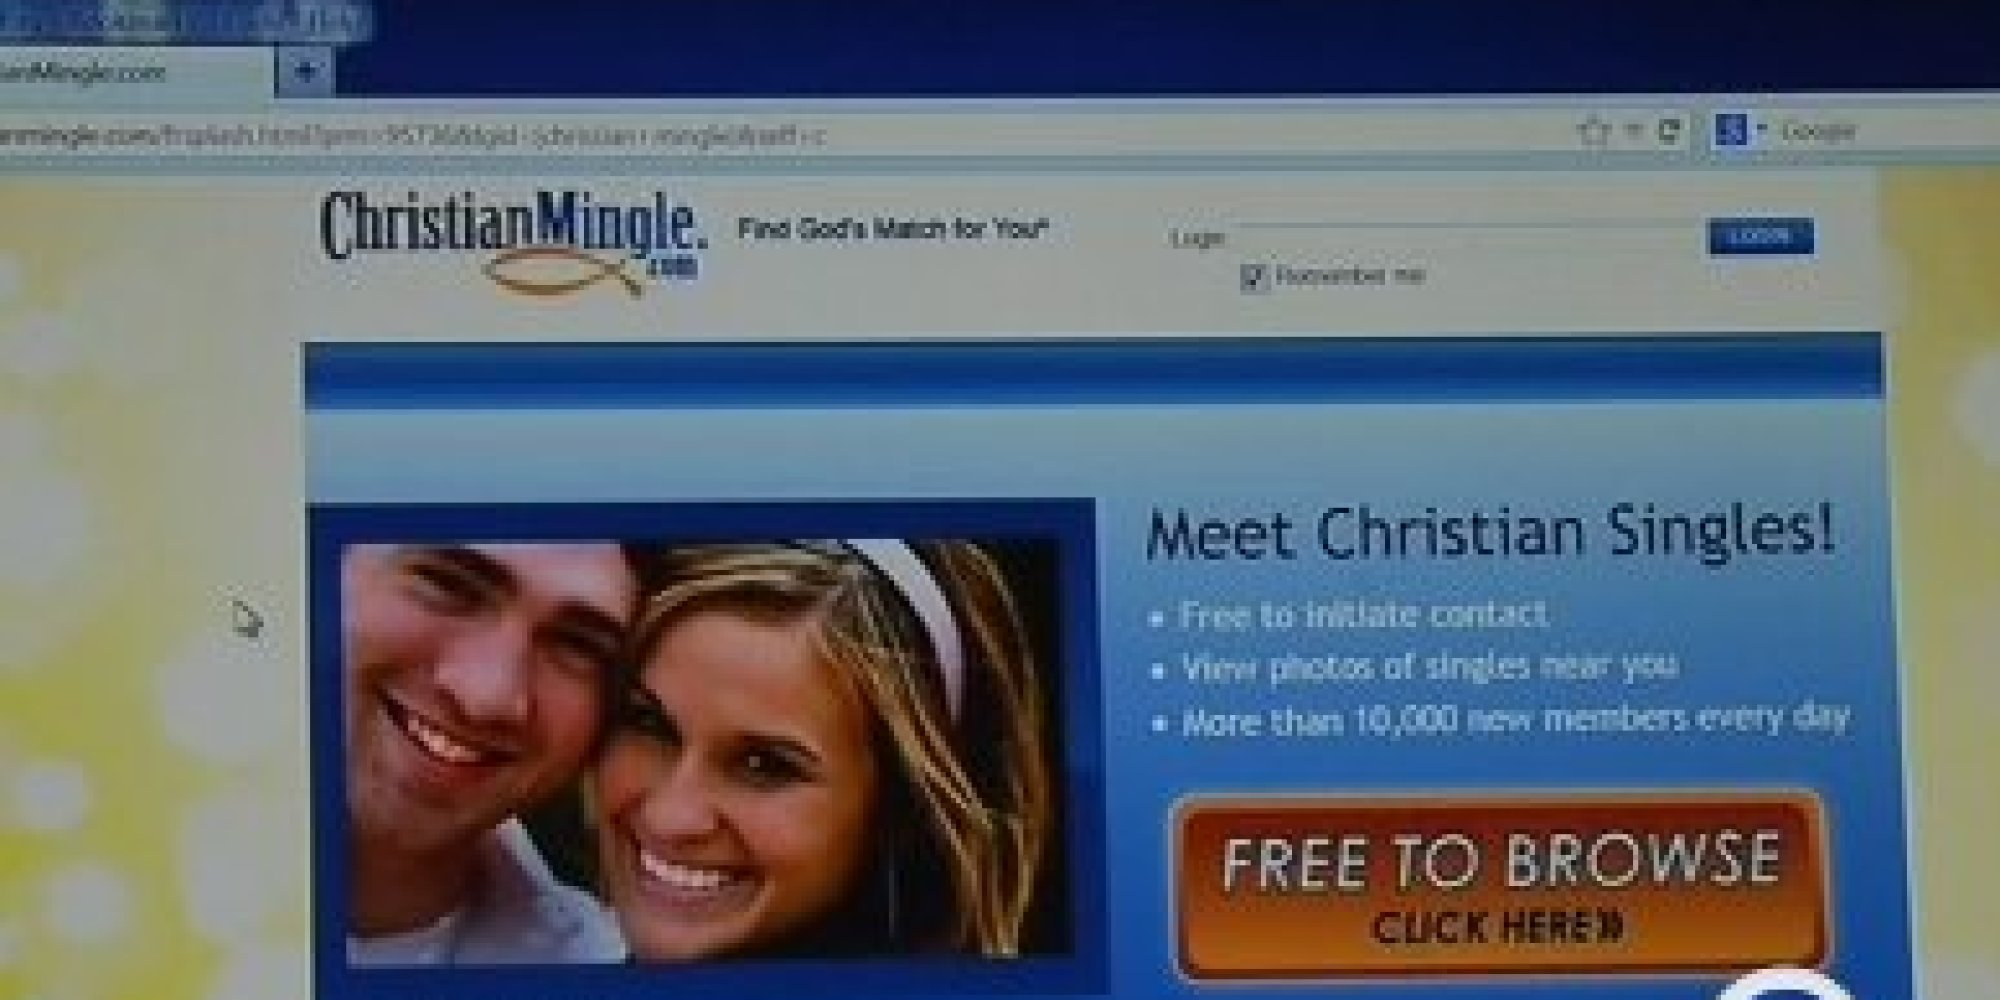 winchendon christian women dating site Meet winchendon singles online & chat in the forums dhu is a 100% free dating site to find personals & casual encounters in winchendon.